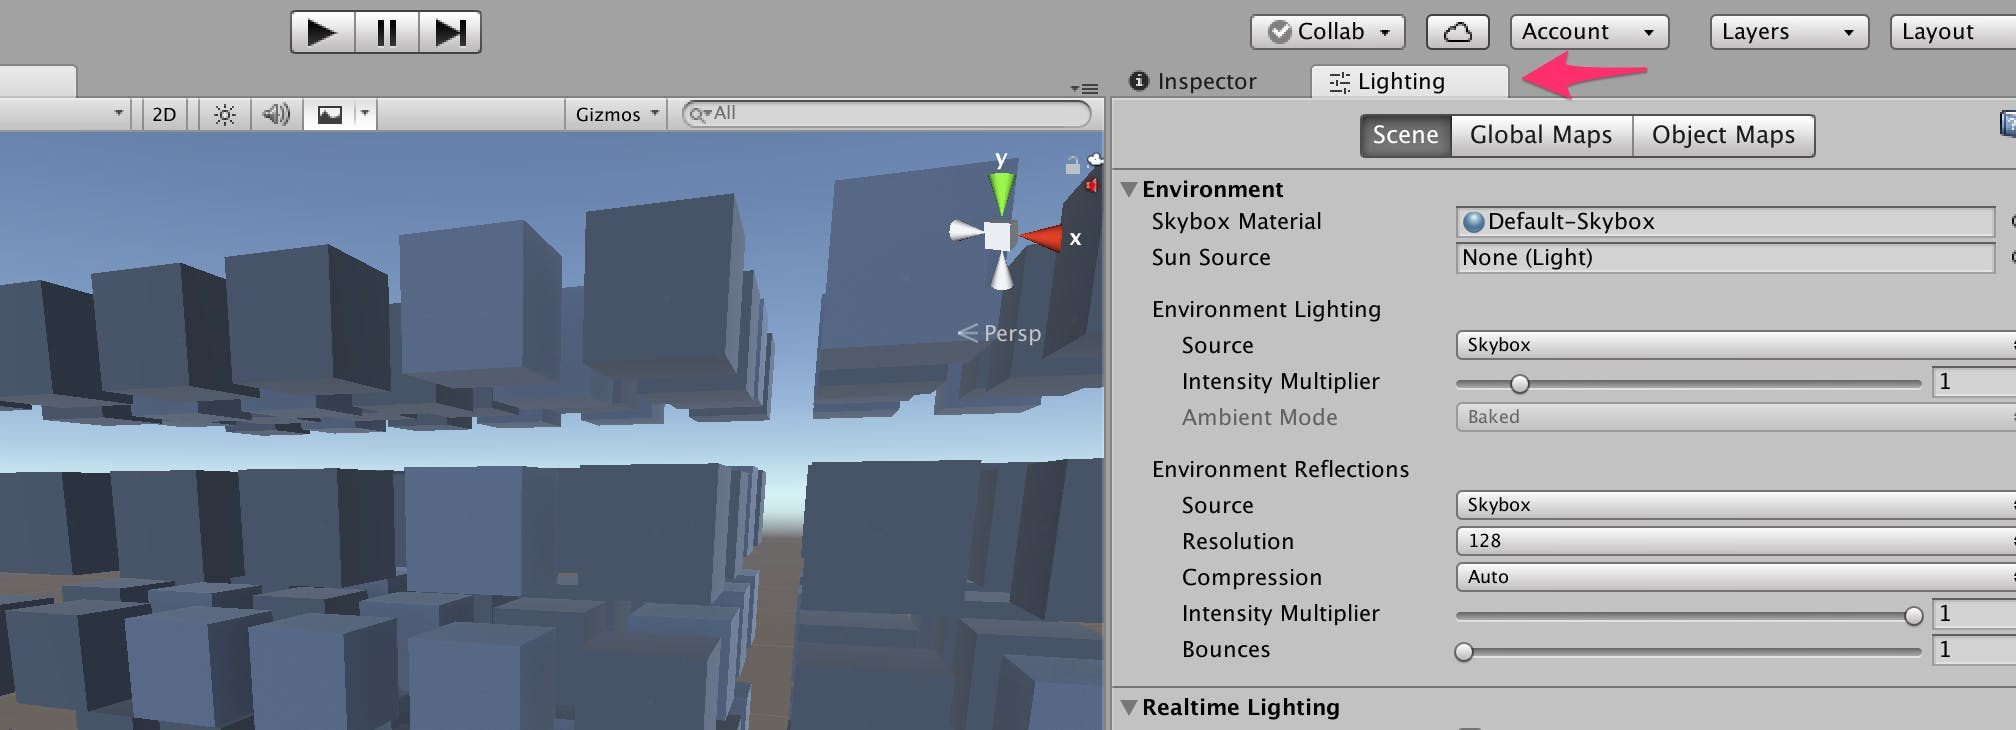 Unity_2018_1_0f2_Personal__64bit__-_stage4_unity_-_FPS2018_-_Android__Personal___Metal_.png